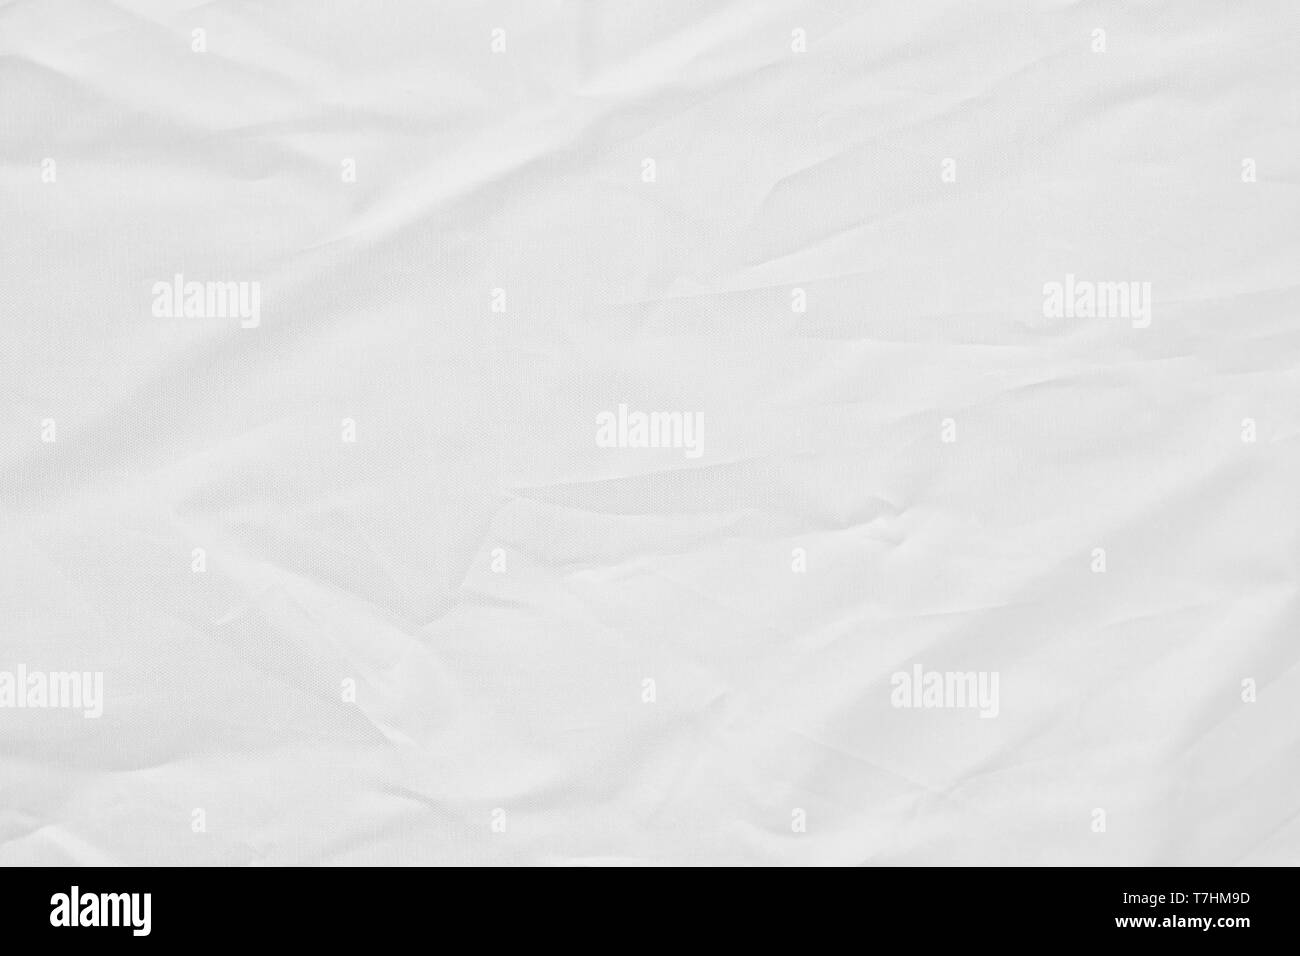 119f2aaa9 Fabric Wrinkled Stock Photos & Fabric Wrinkled Stock Images - Alamy